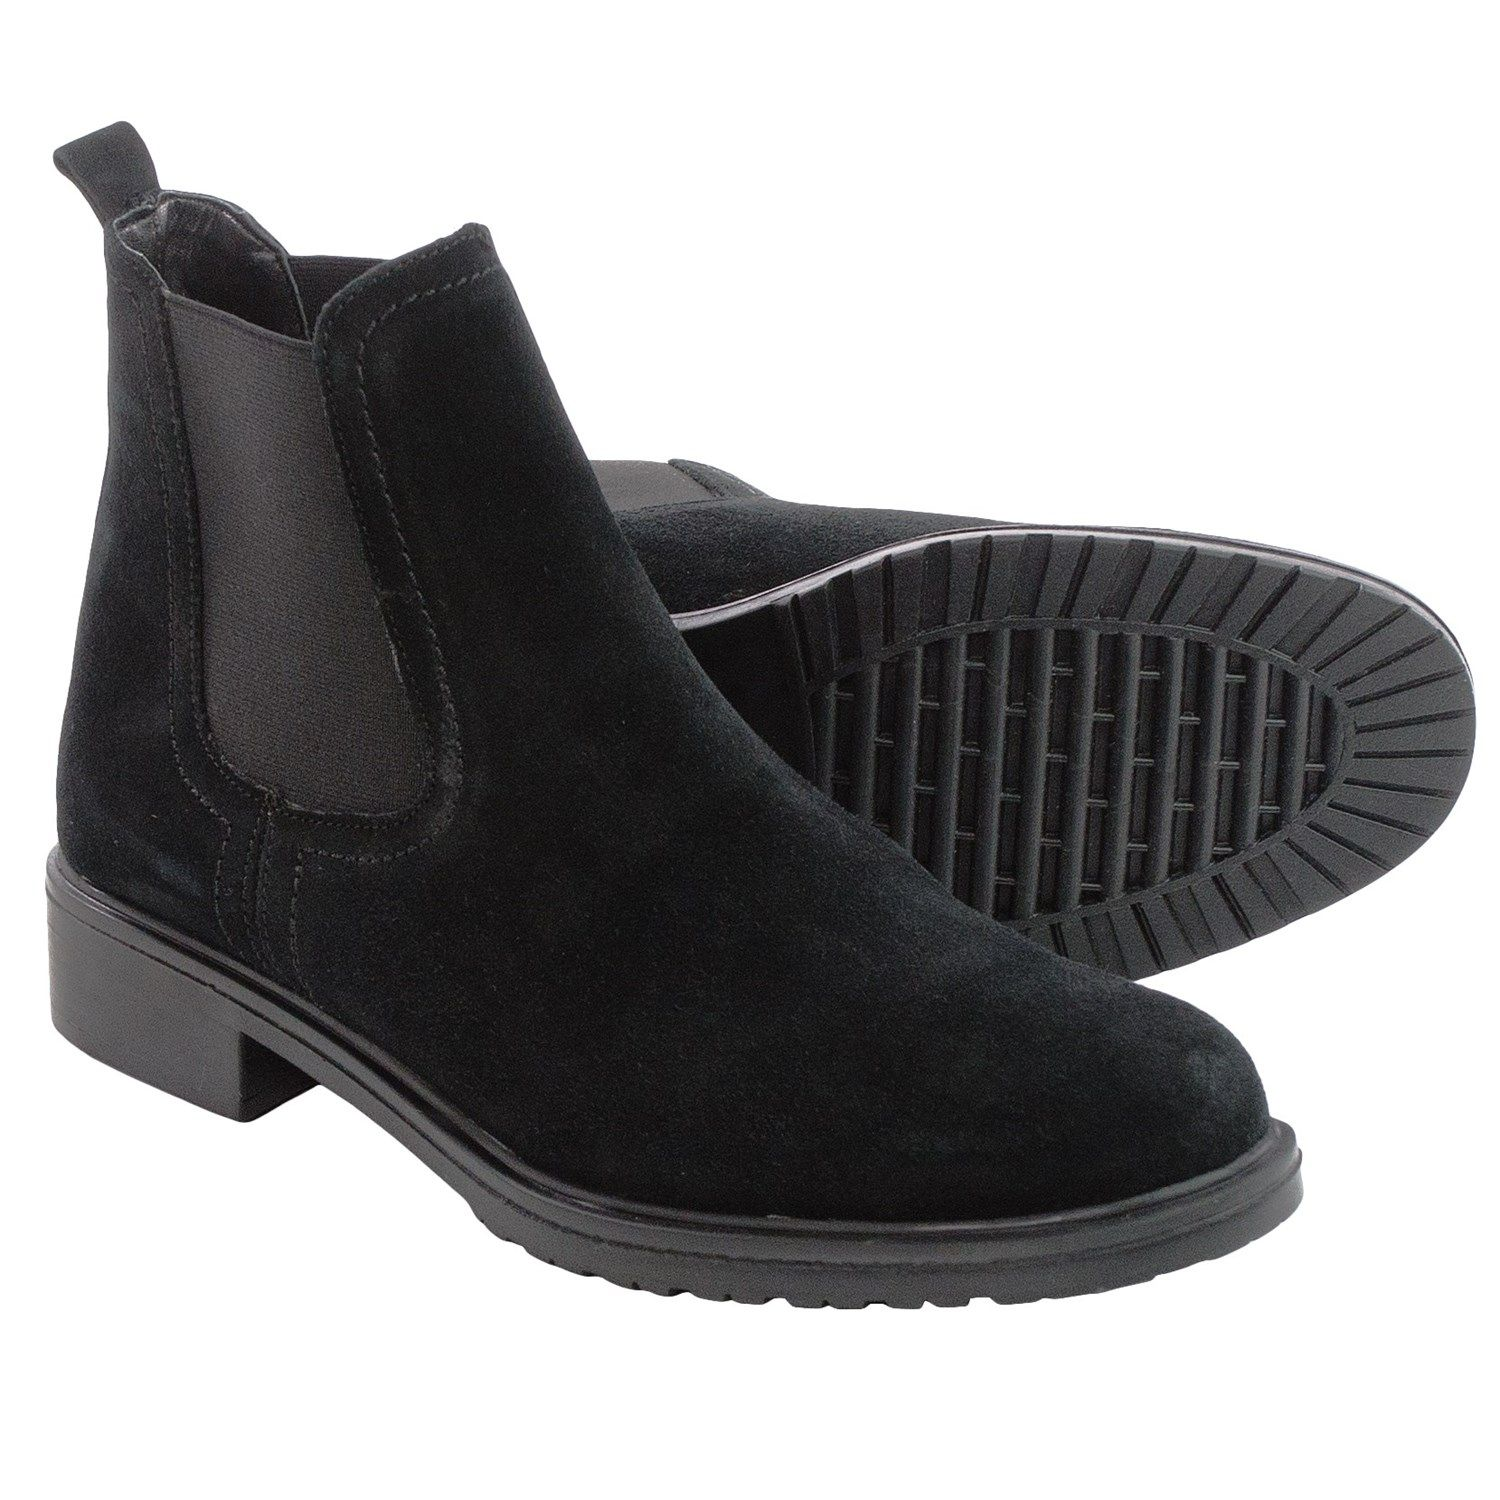 cb6865f473 The Flexx Shetland Chelsea Boots - Suede (For Women) | Non-ugly ...